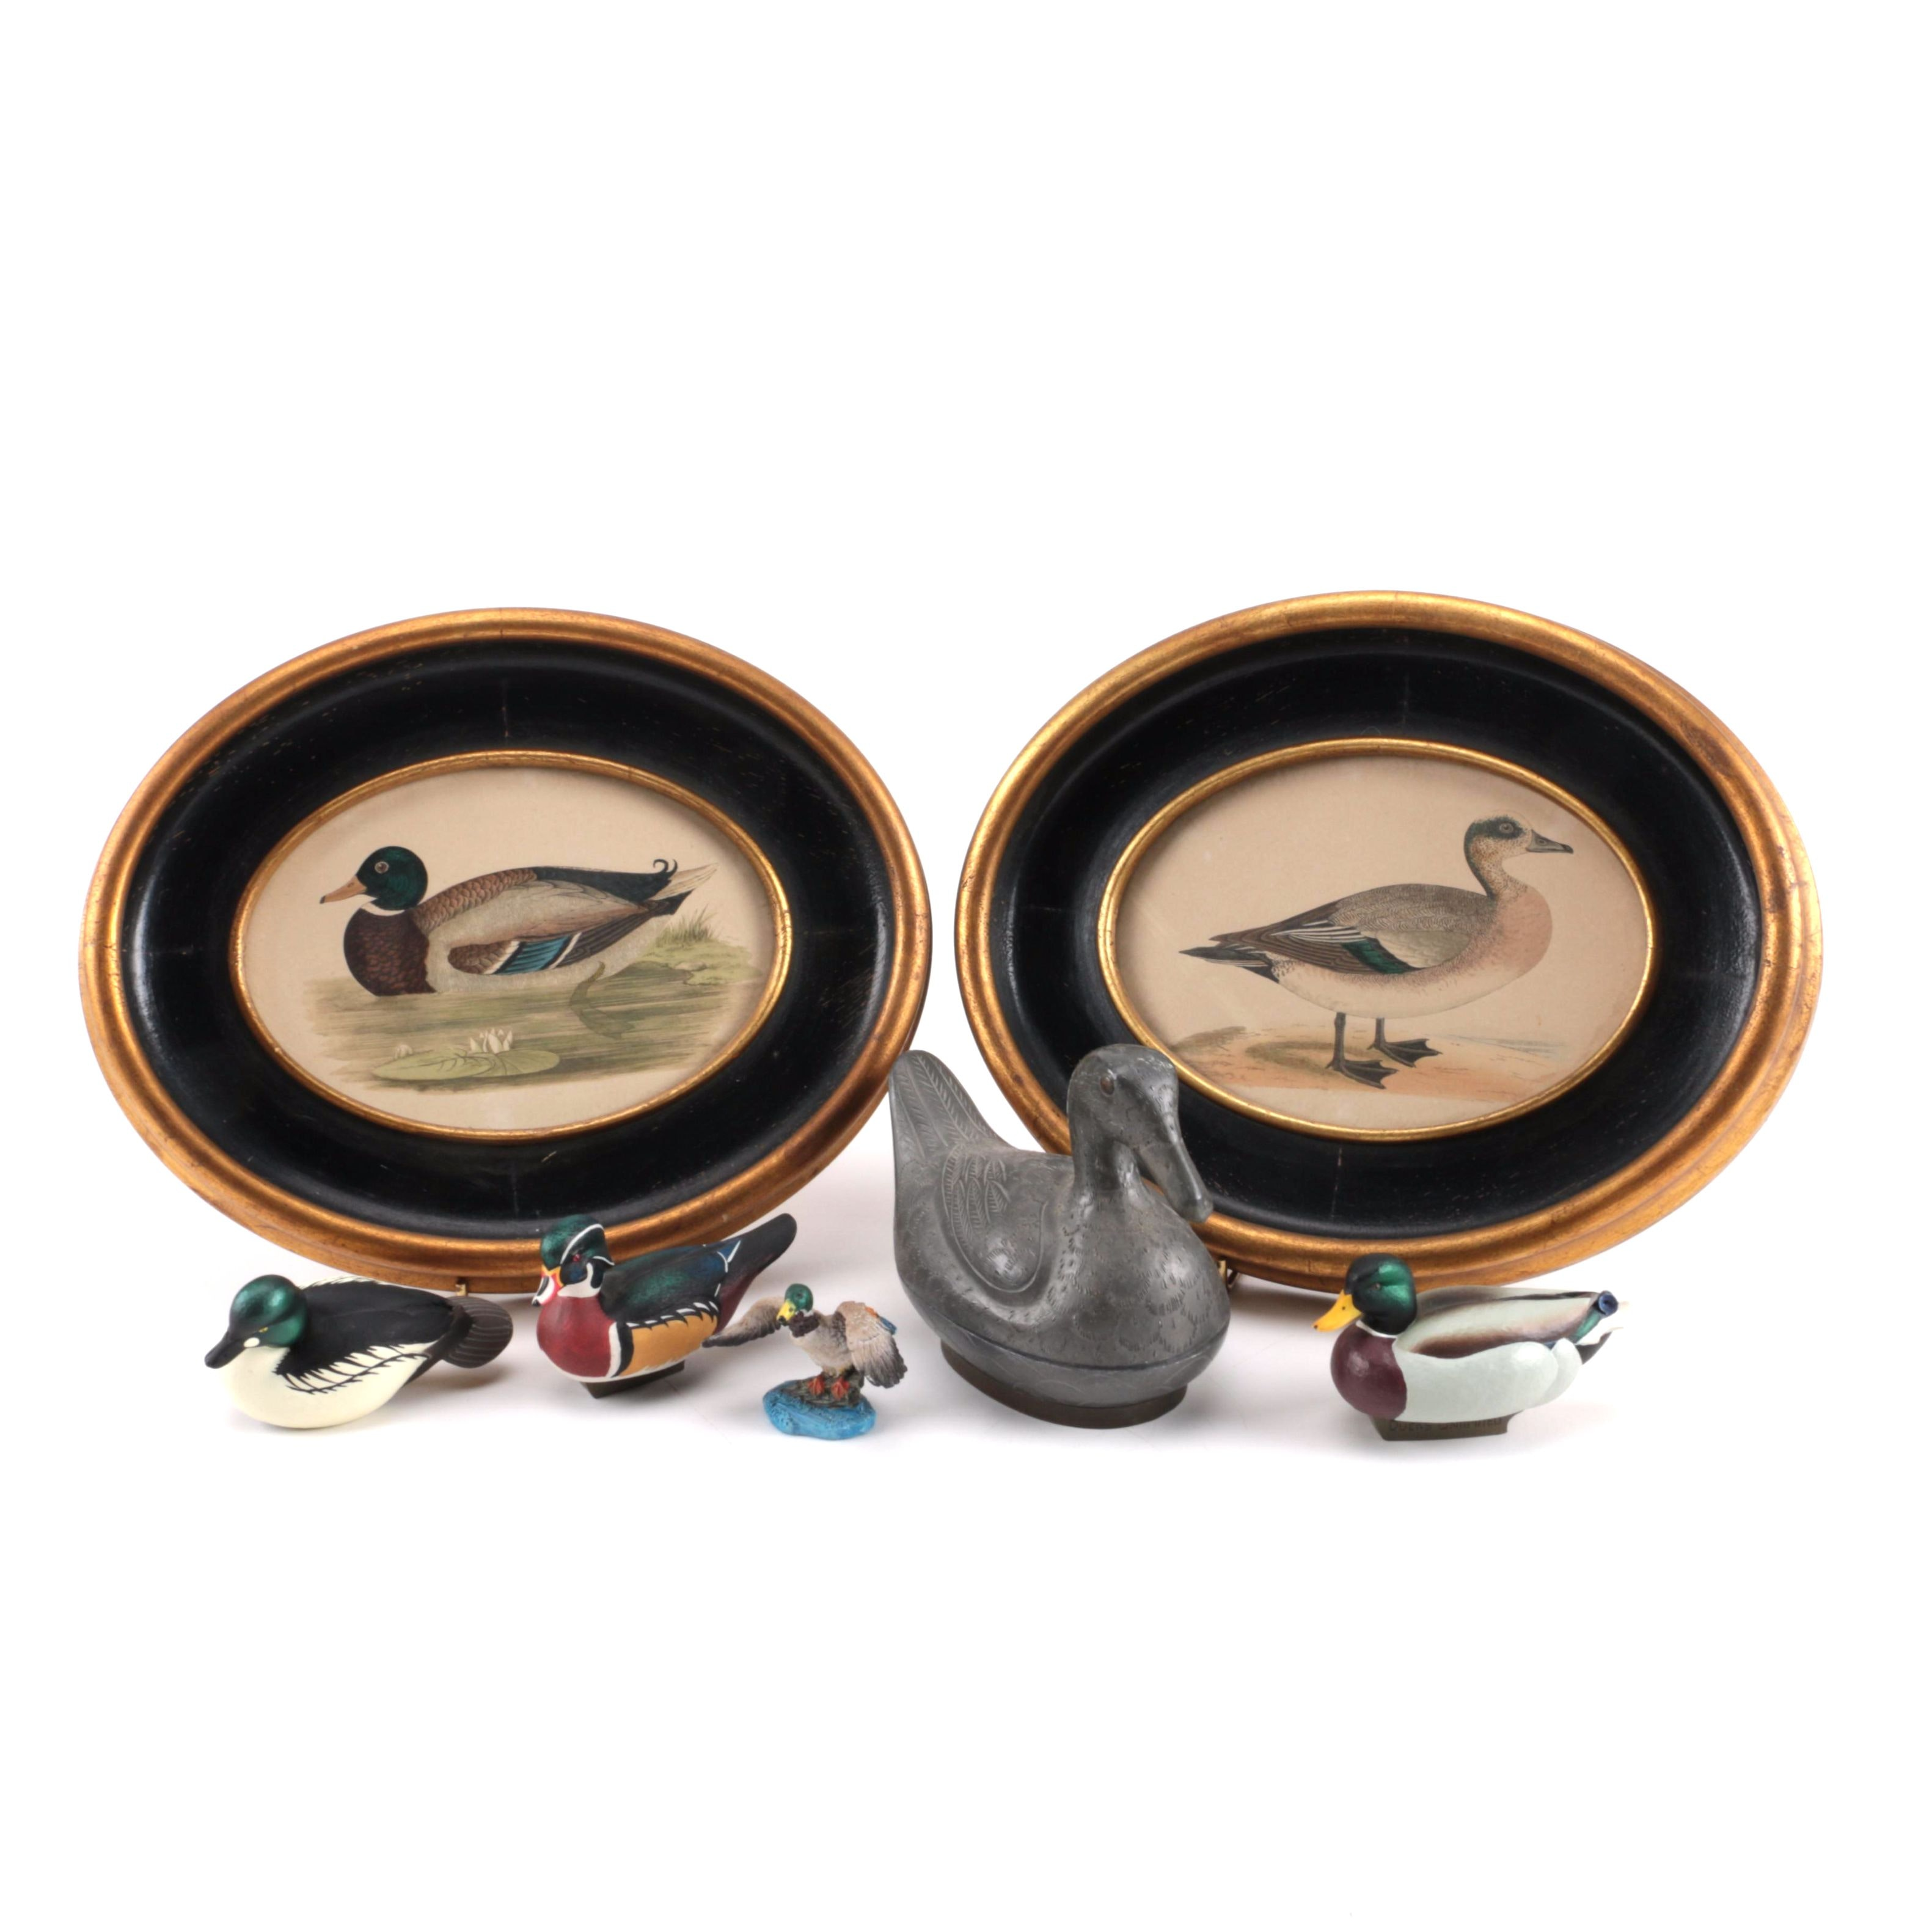 Duck Themed Home Decor including Colored Lithographs